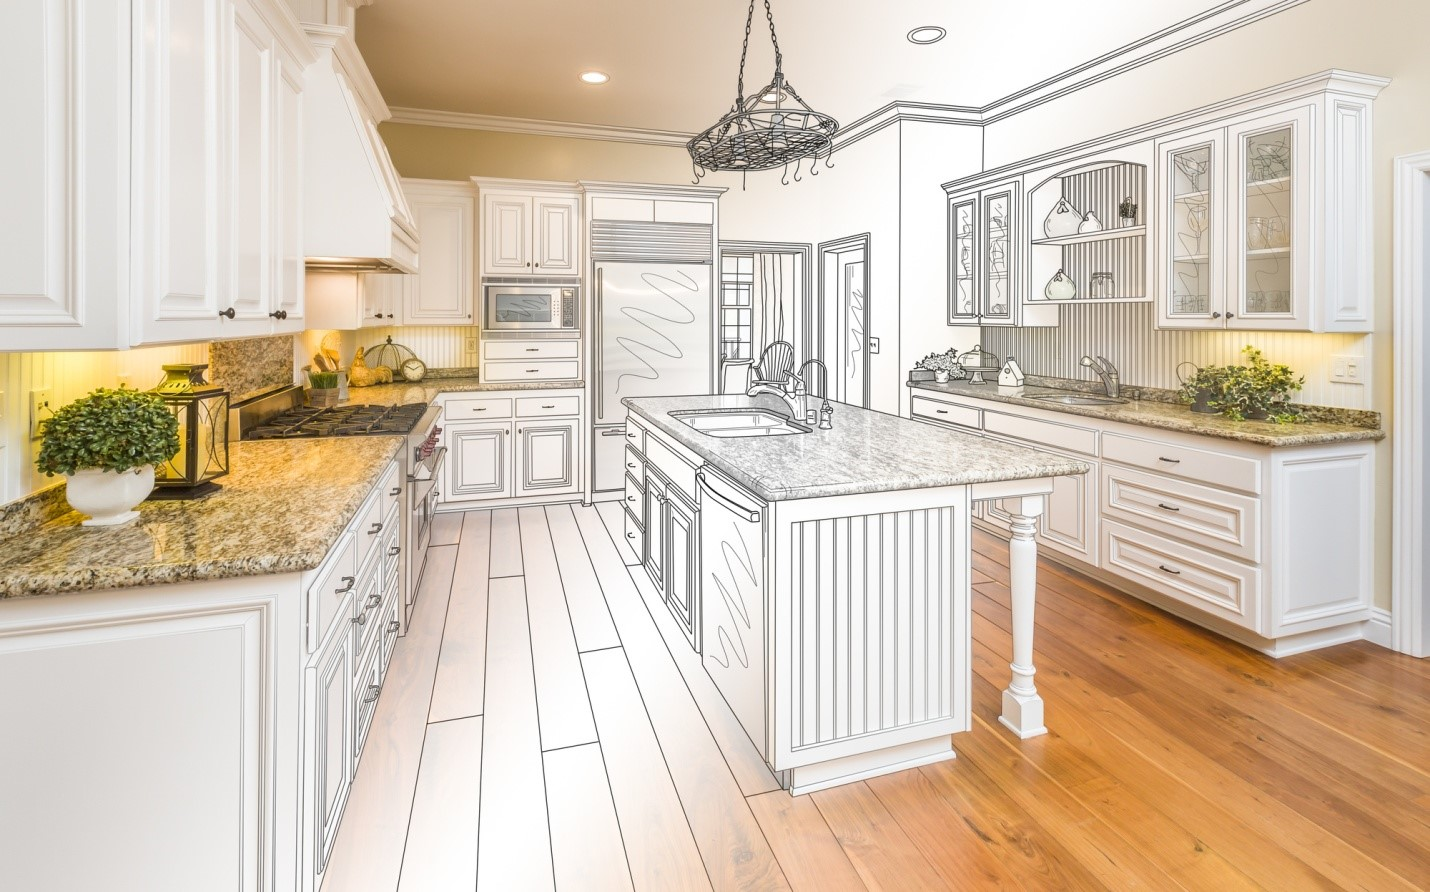 How to Formulate the Ultimate Kitchen Remodel